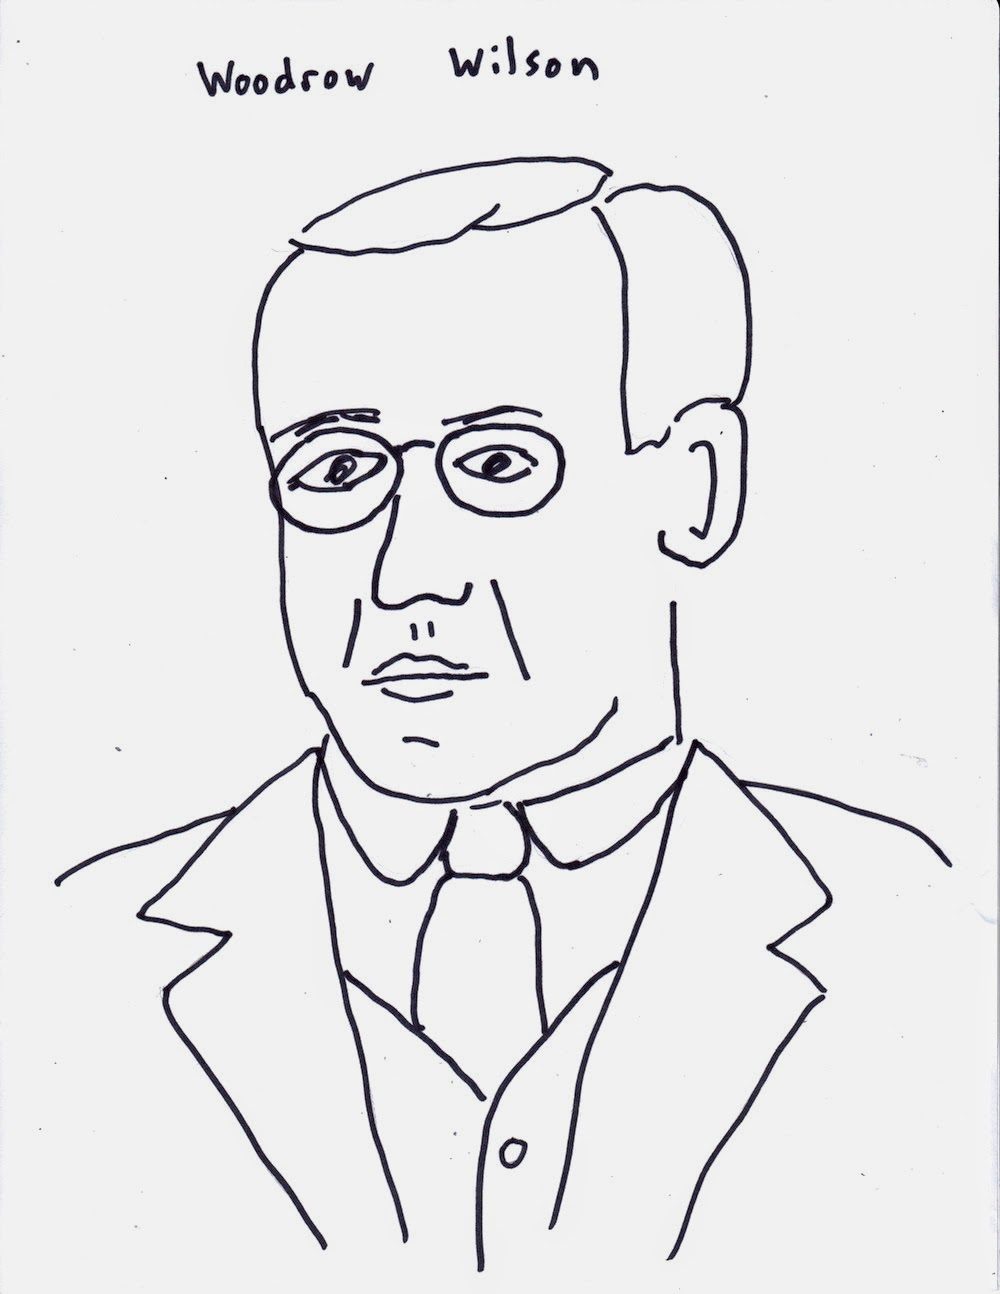 woodrow wilson coloring pages - photo#10